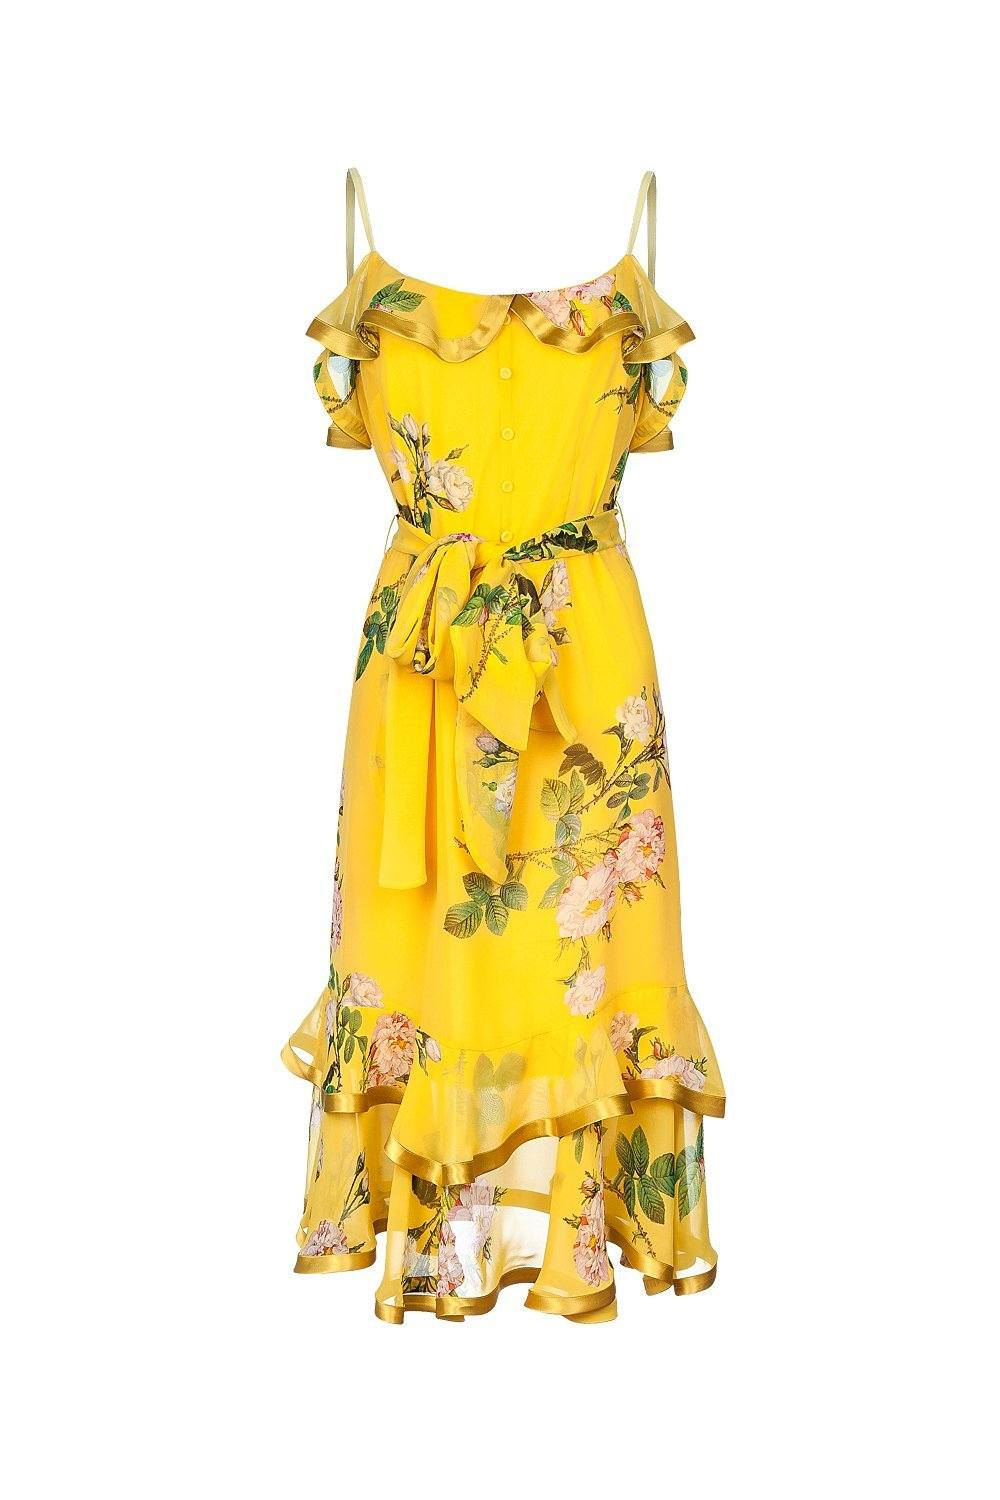 Rose yellow dress